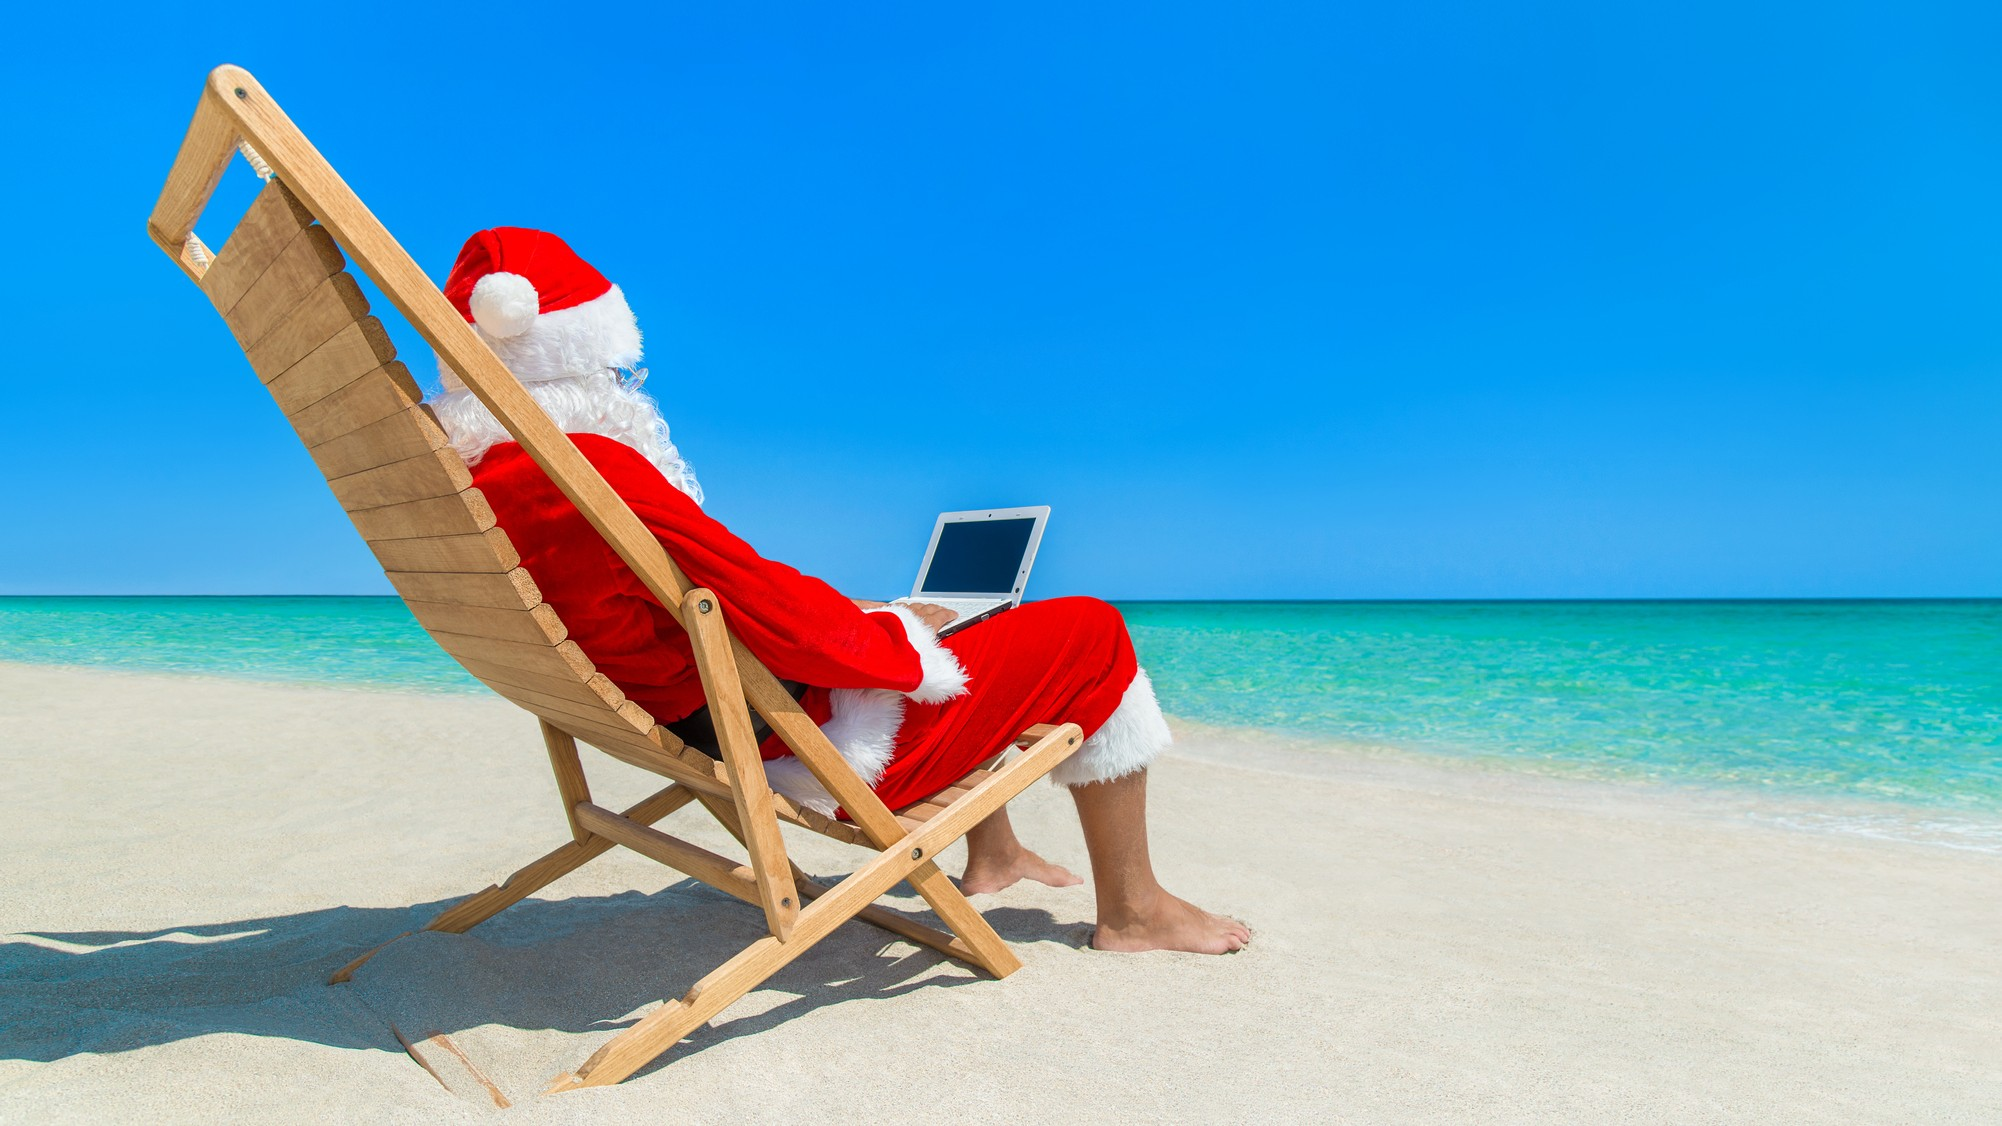 santa sitting on beach looking up best asx shares to buy in december on laptop